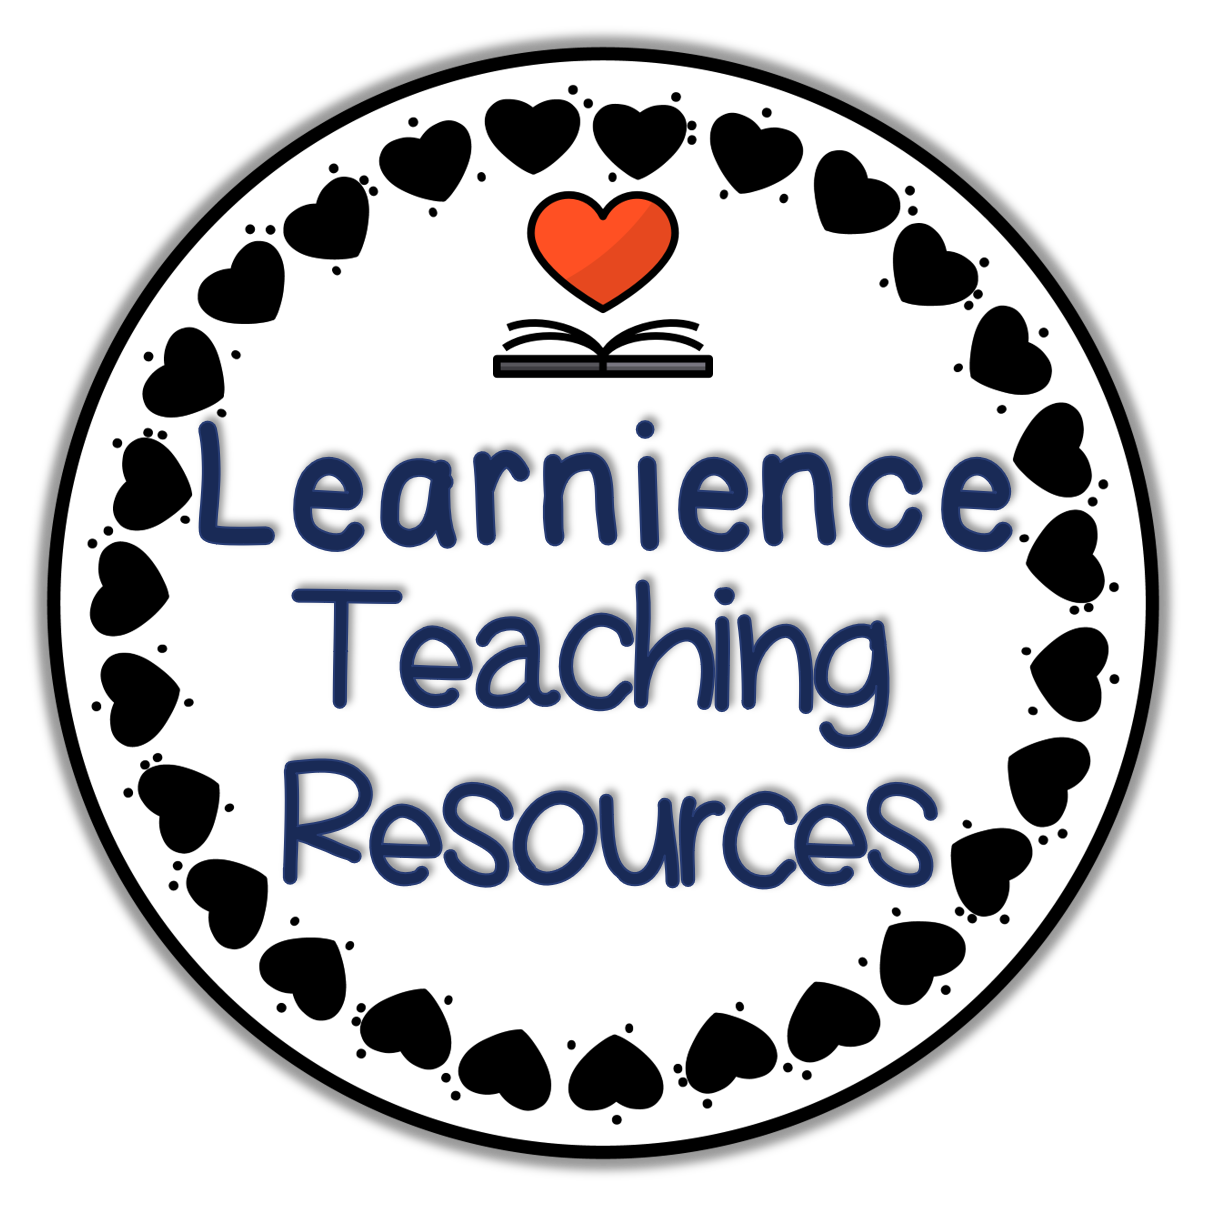 learnience-logo-bw-1.png